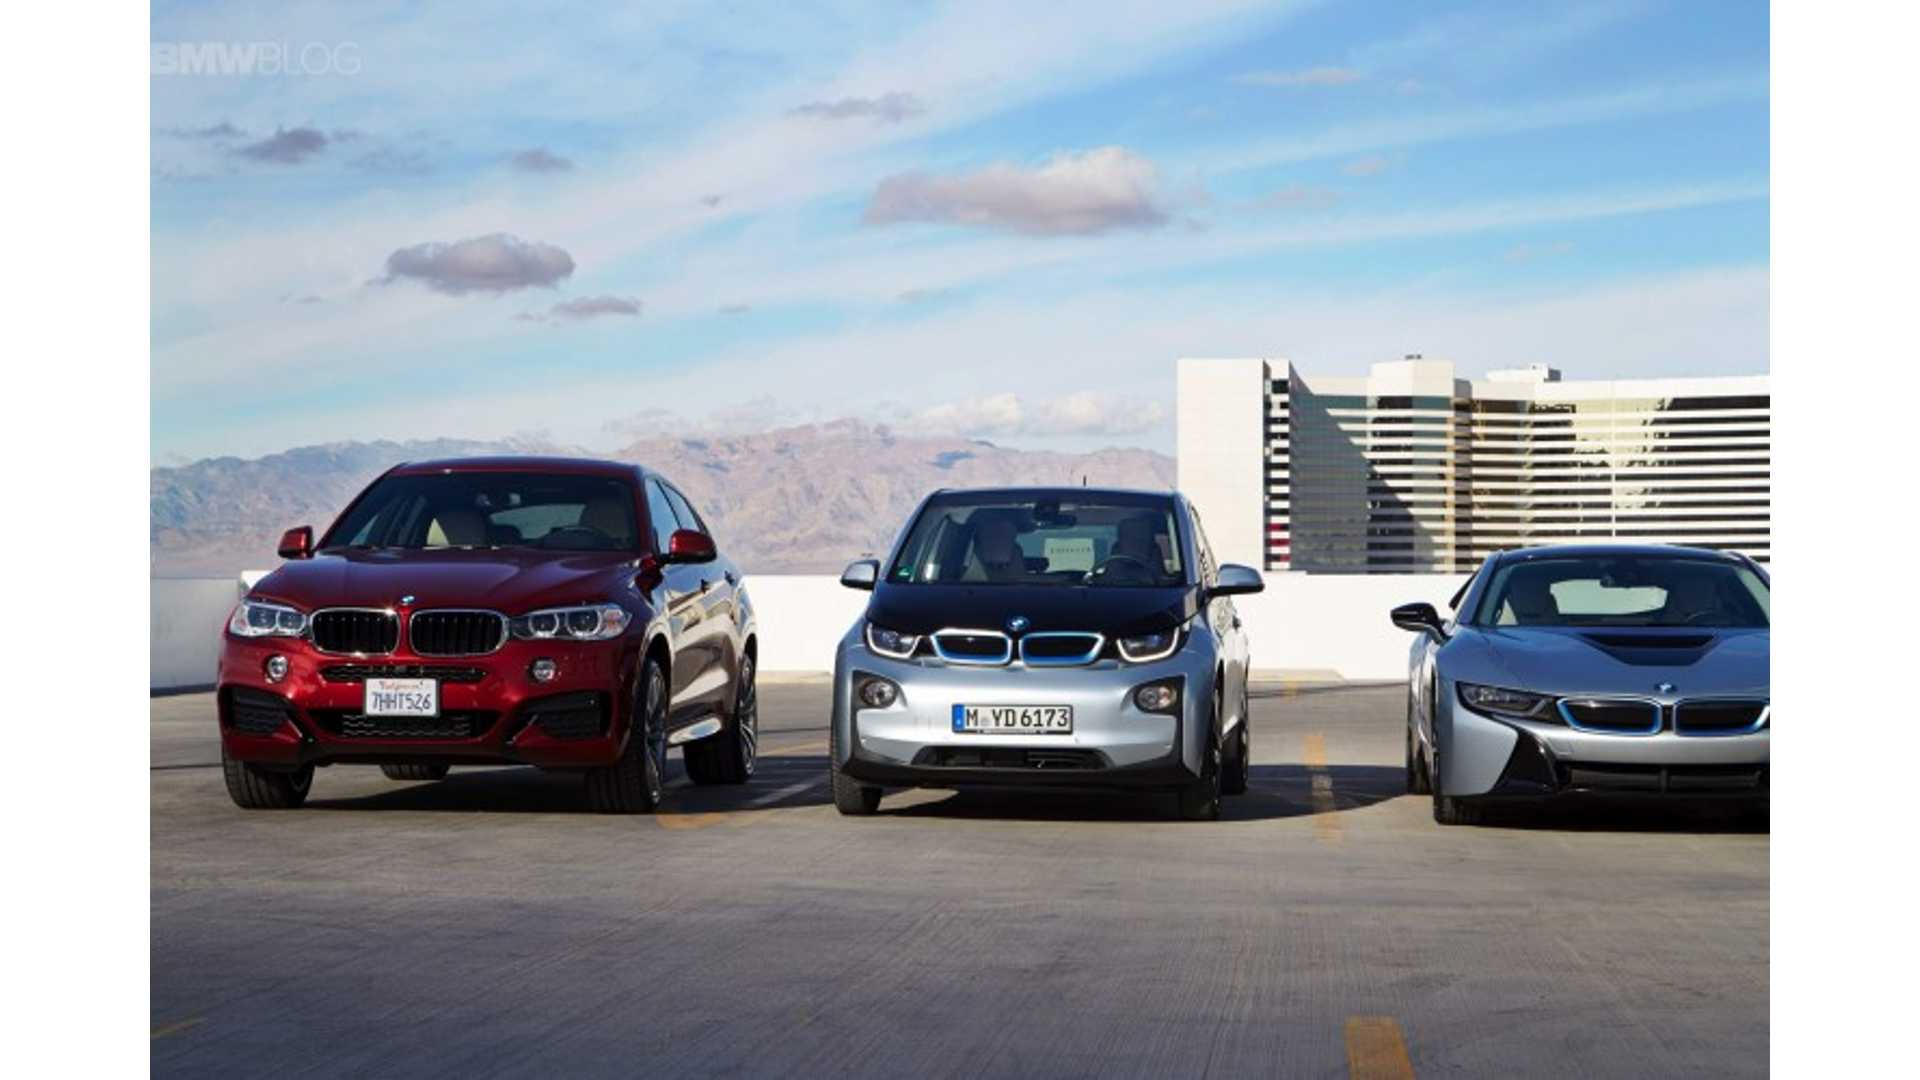 Bmw I3 Parks Itself In Multi Story Parking Garage